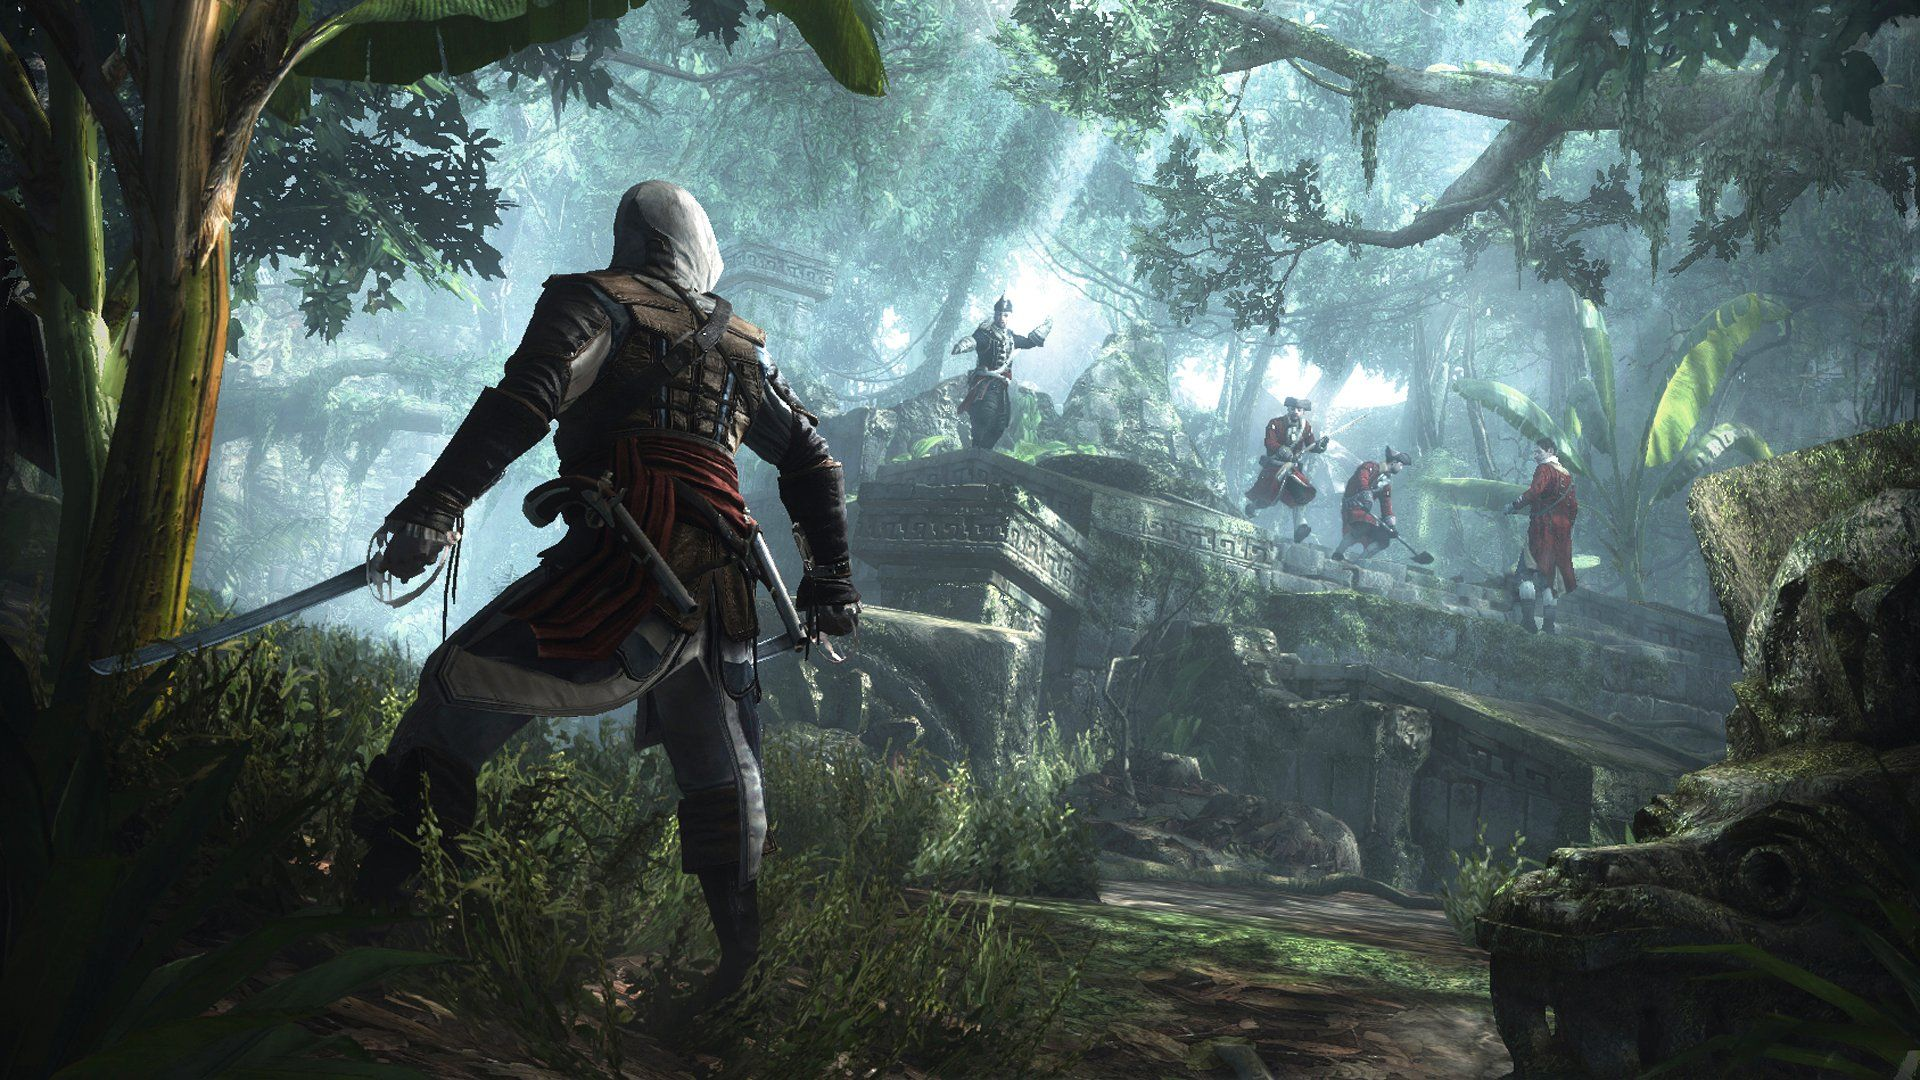 Edwar kenway fight guards assassins creed black flag pinterest assassins creed iv black flag 40 minute gameplay walkthrough part 1 full gameplay video voltagebd Image collections